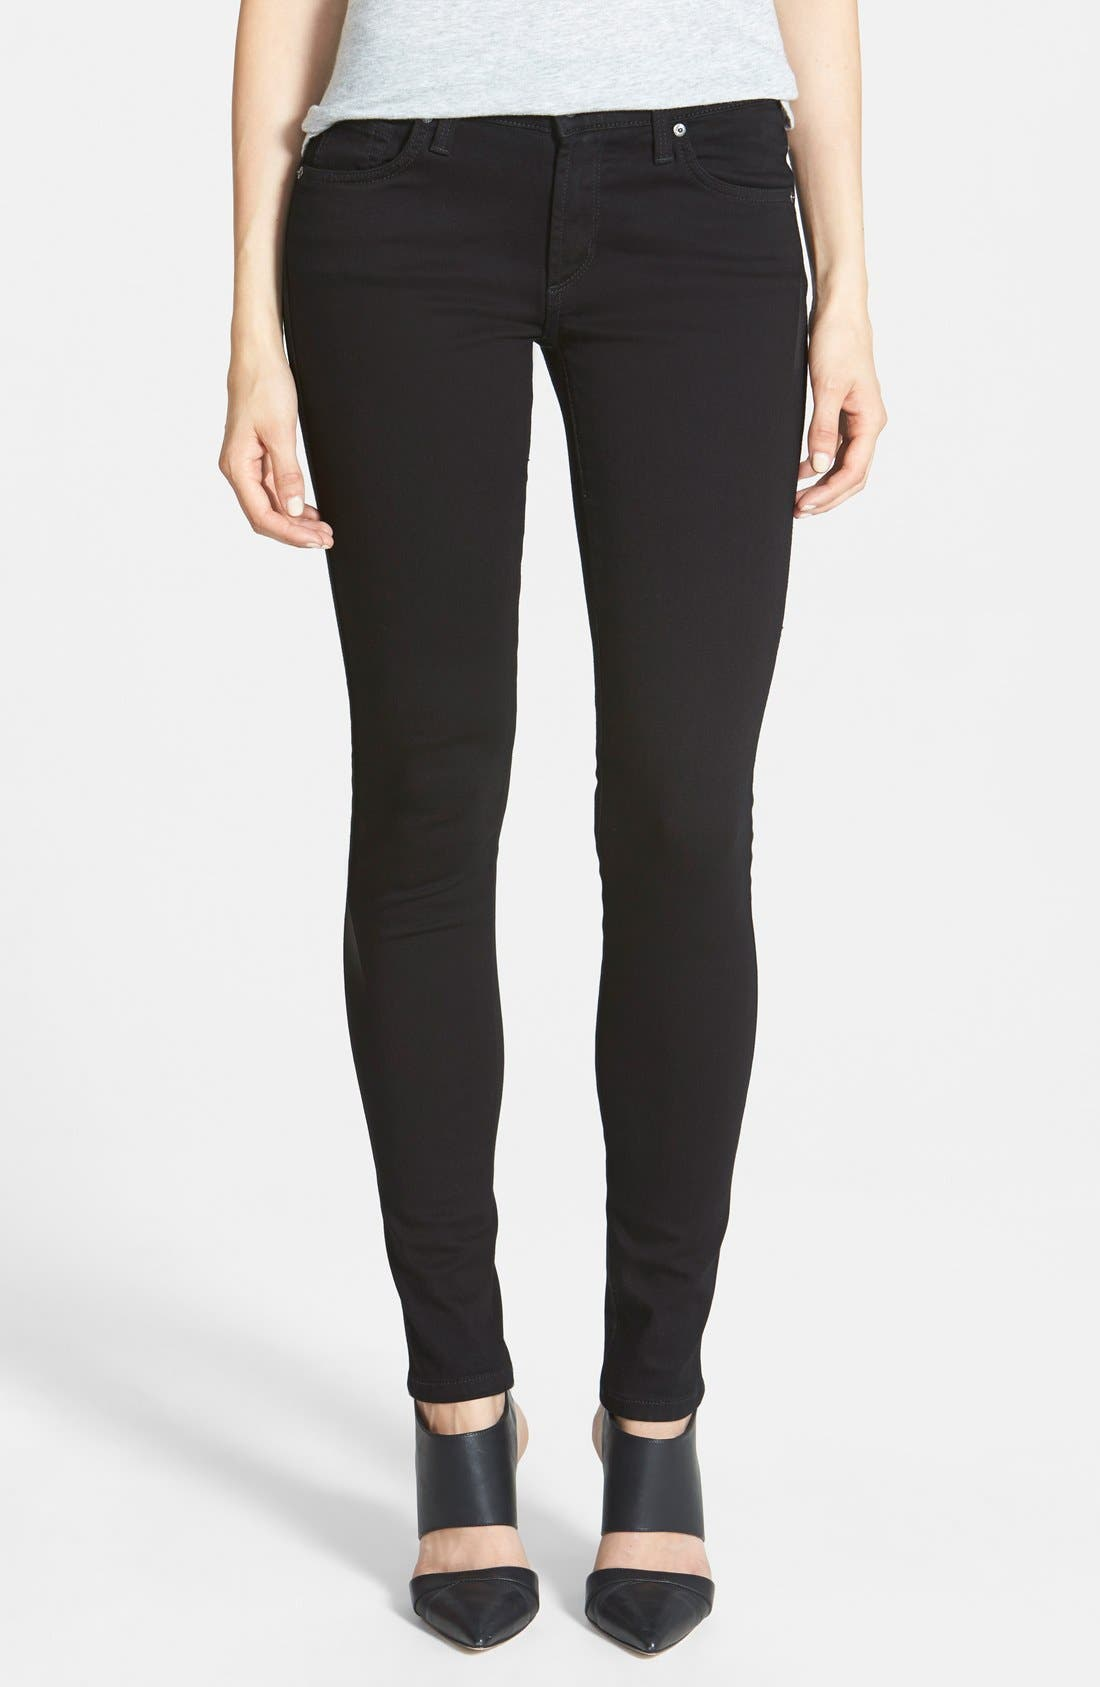 Main Image - James Jeans 'Twiggy' Five Pocket Leggings (Black Clean)